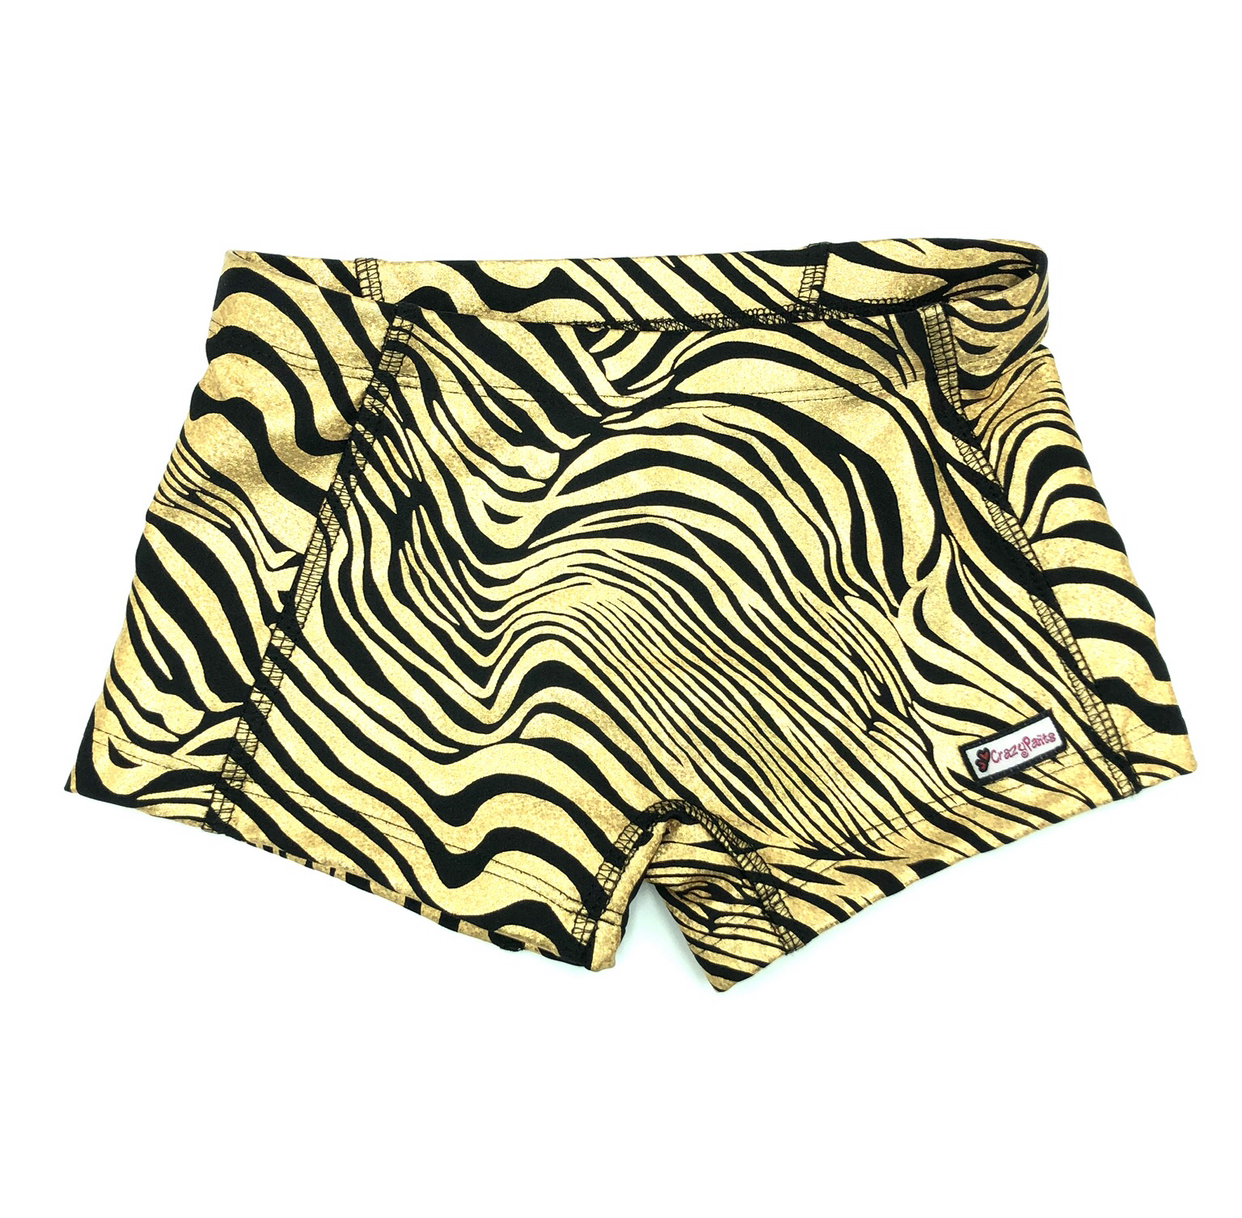 CrazyPants Sparkle Gold & Black Zebra Shorts